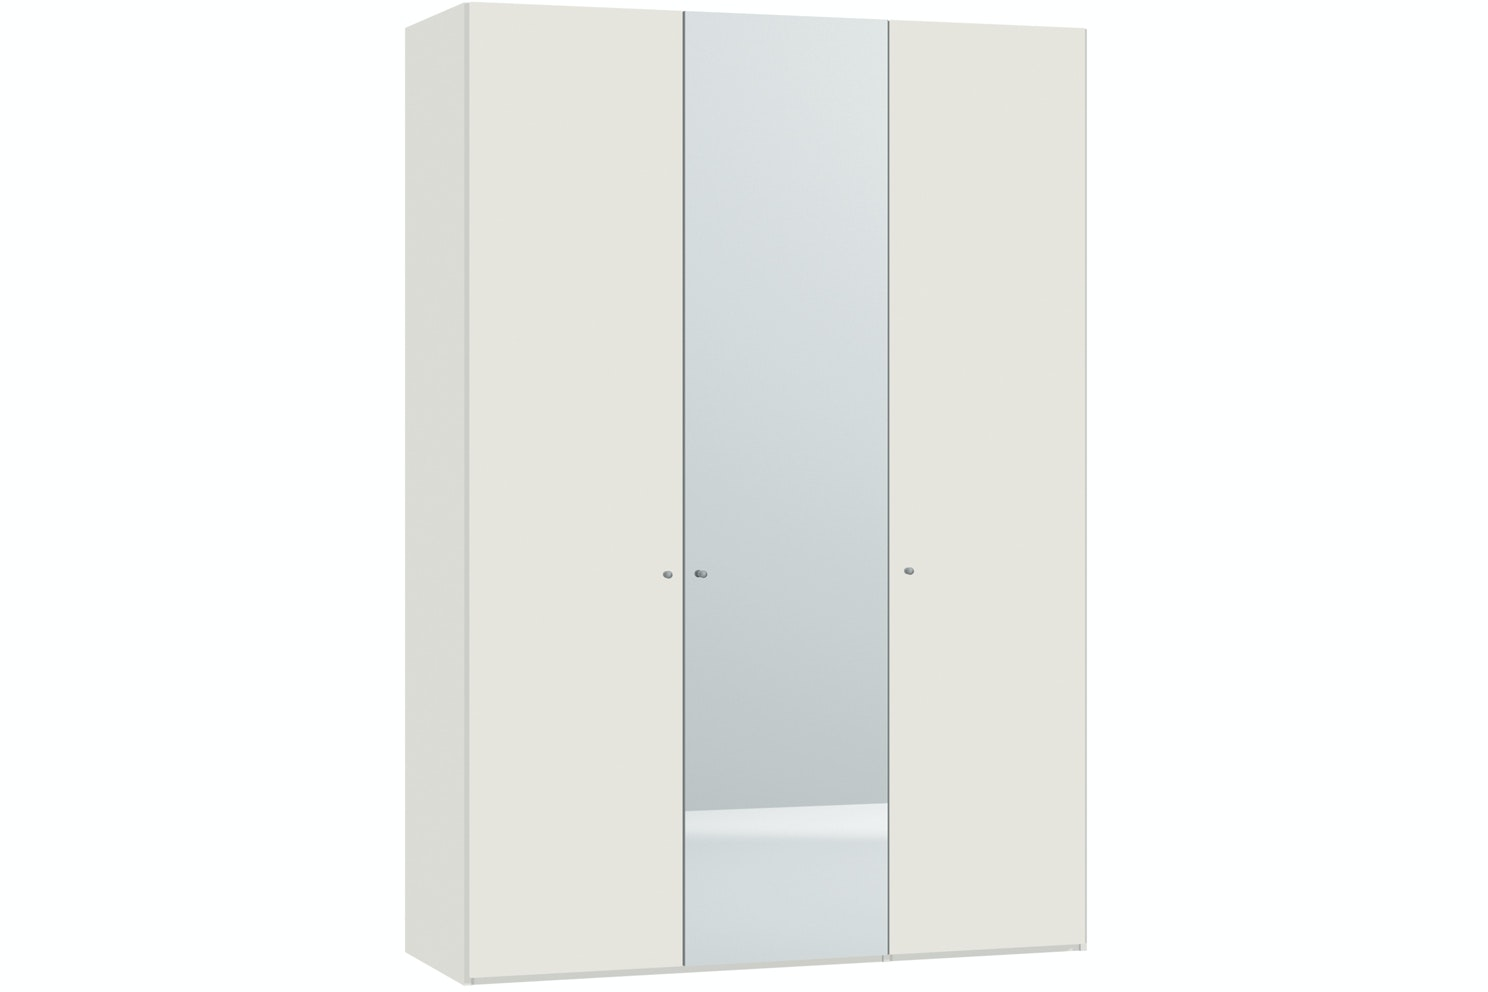 Emer Hinged 3 Door Wardrobe 152Cm | White + Mirror